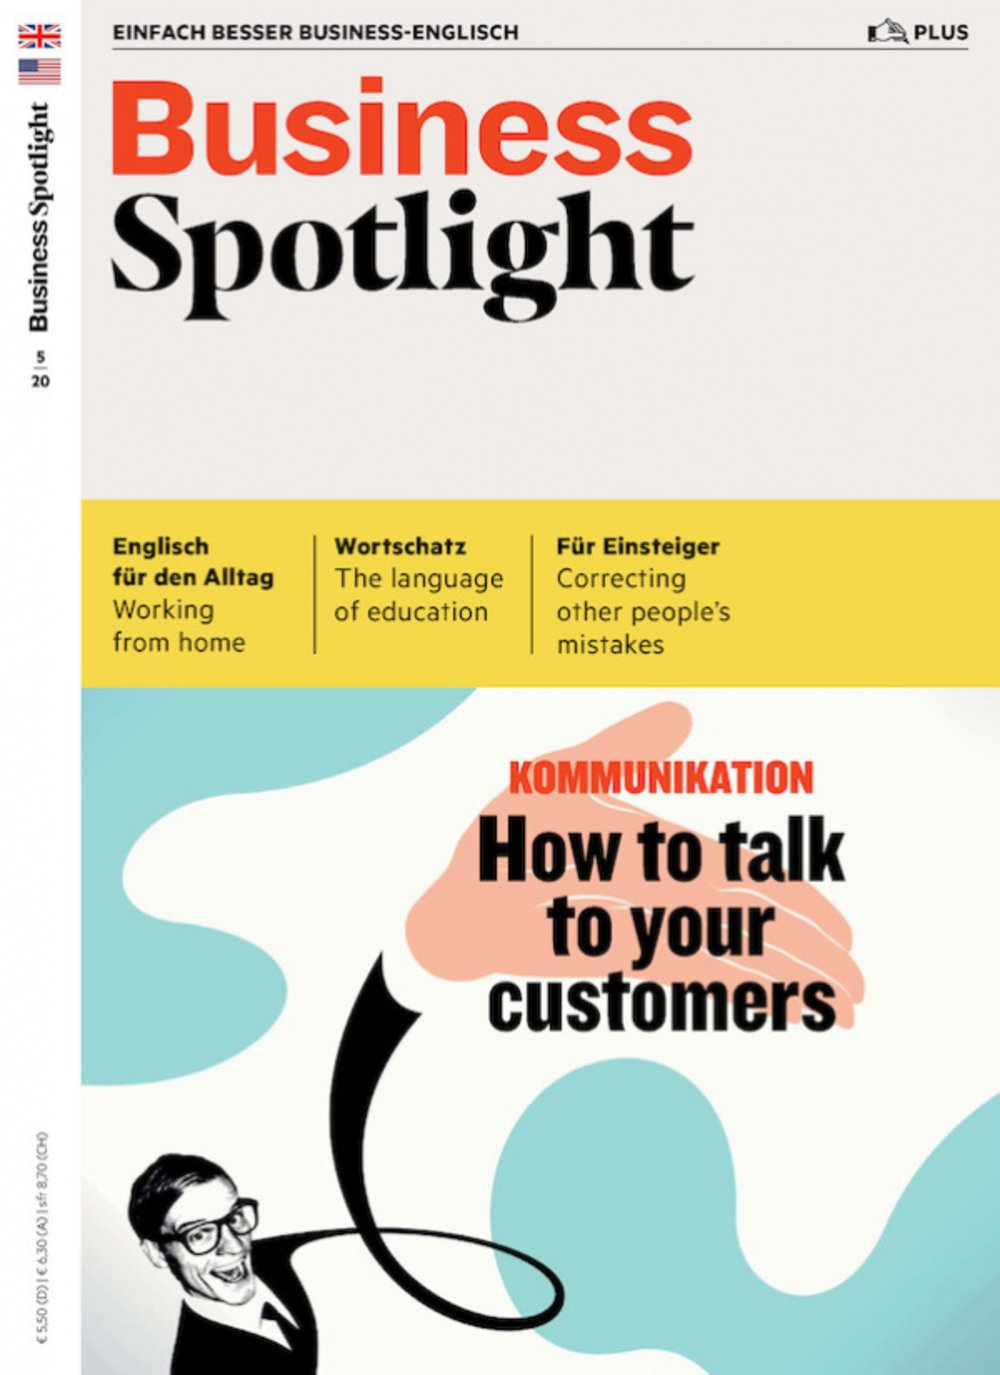 Business Spotlight PLUS ePaper 05/2020